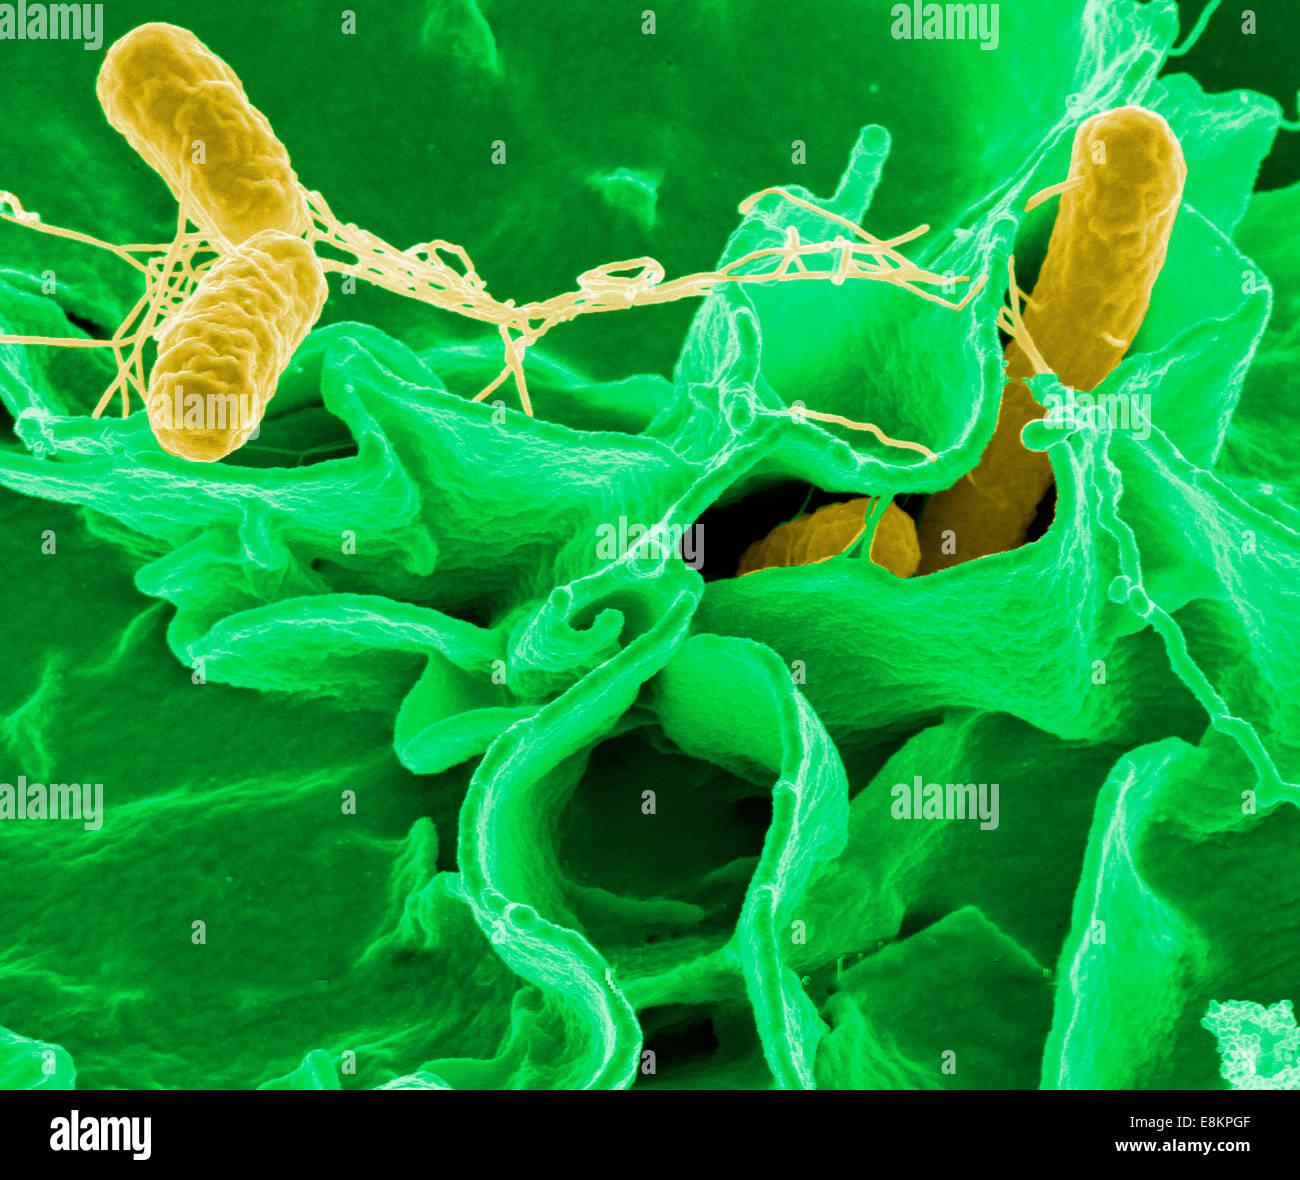 Cunnilingus cause bacterial food poisoning